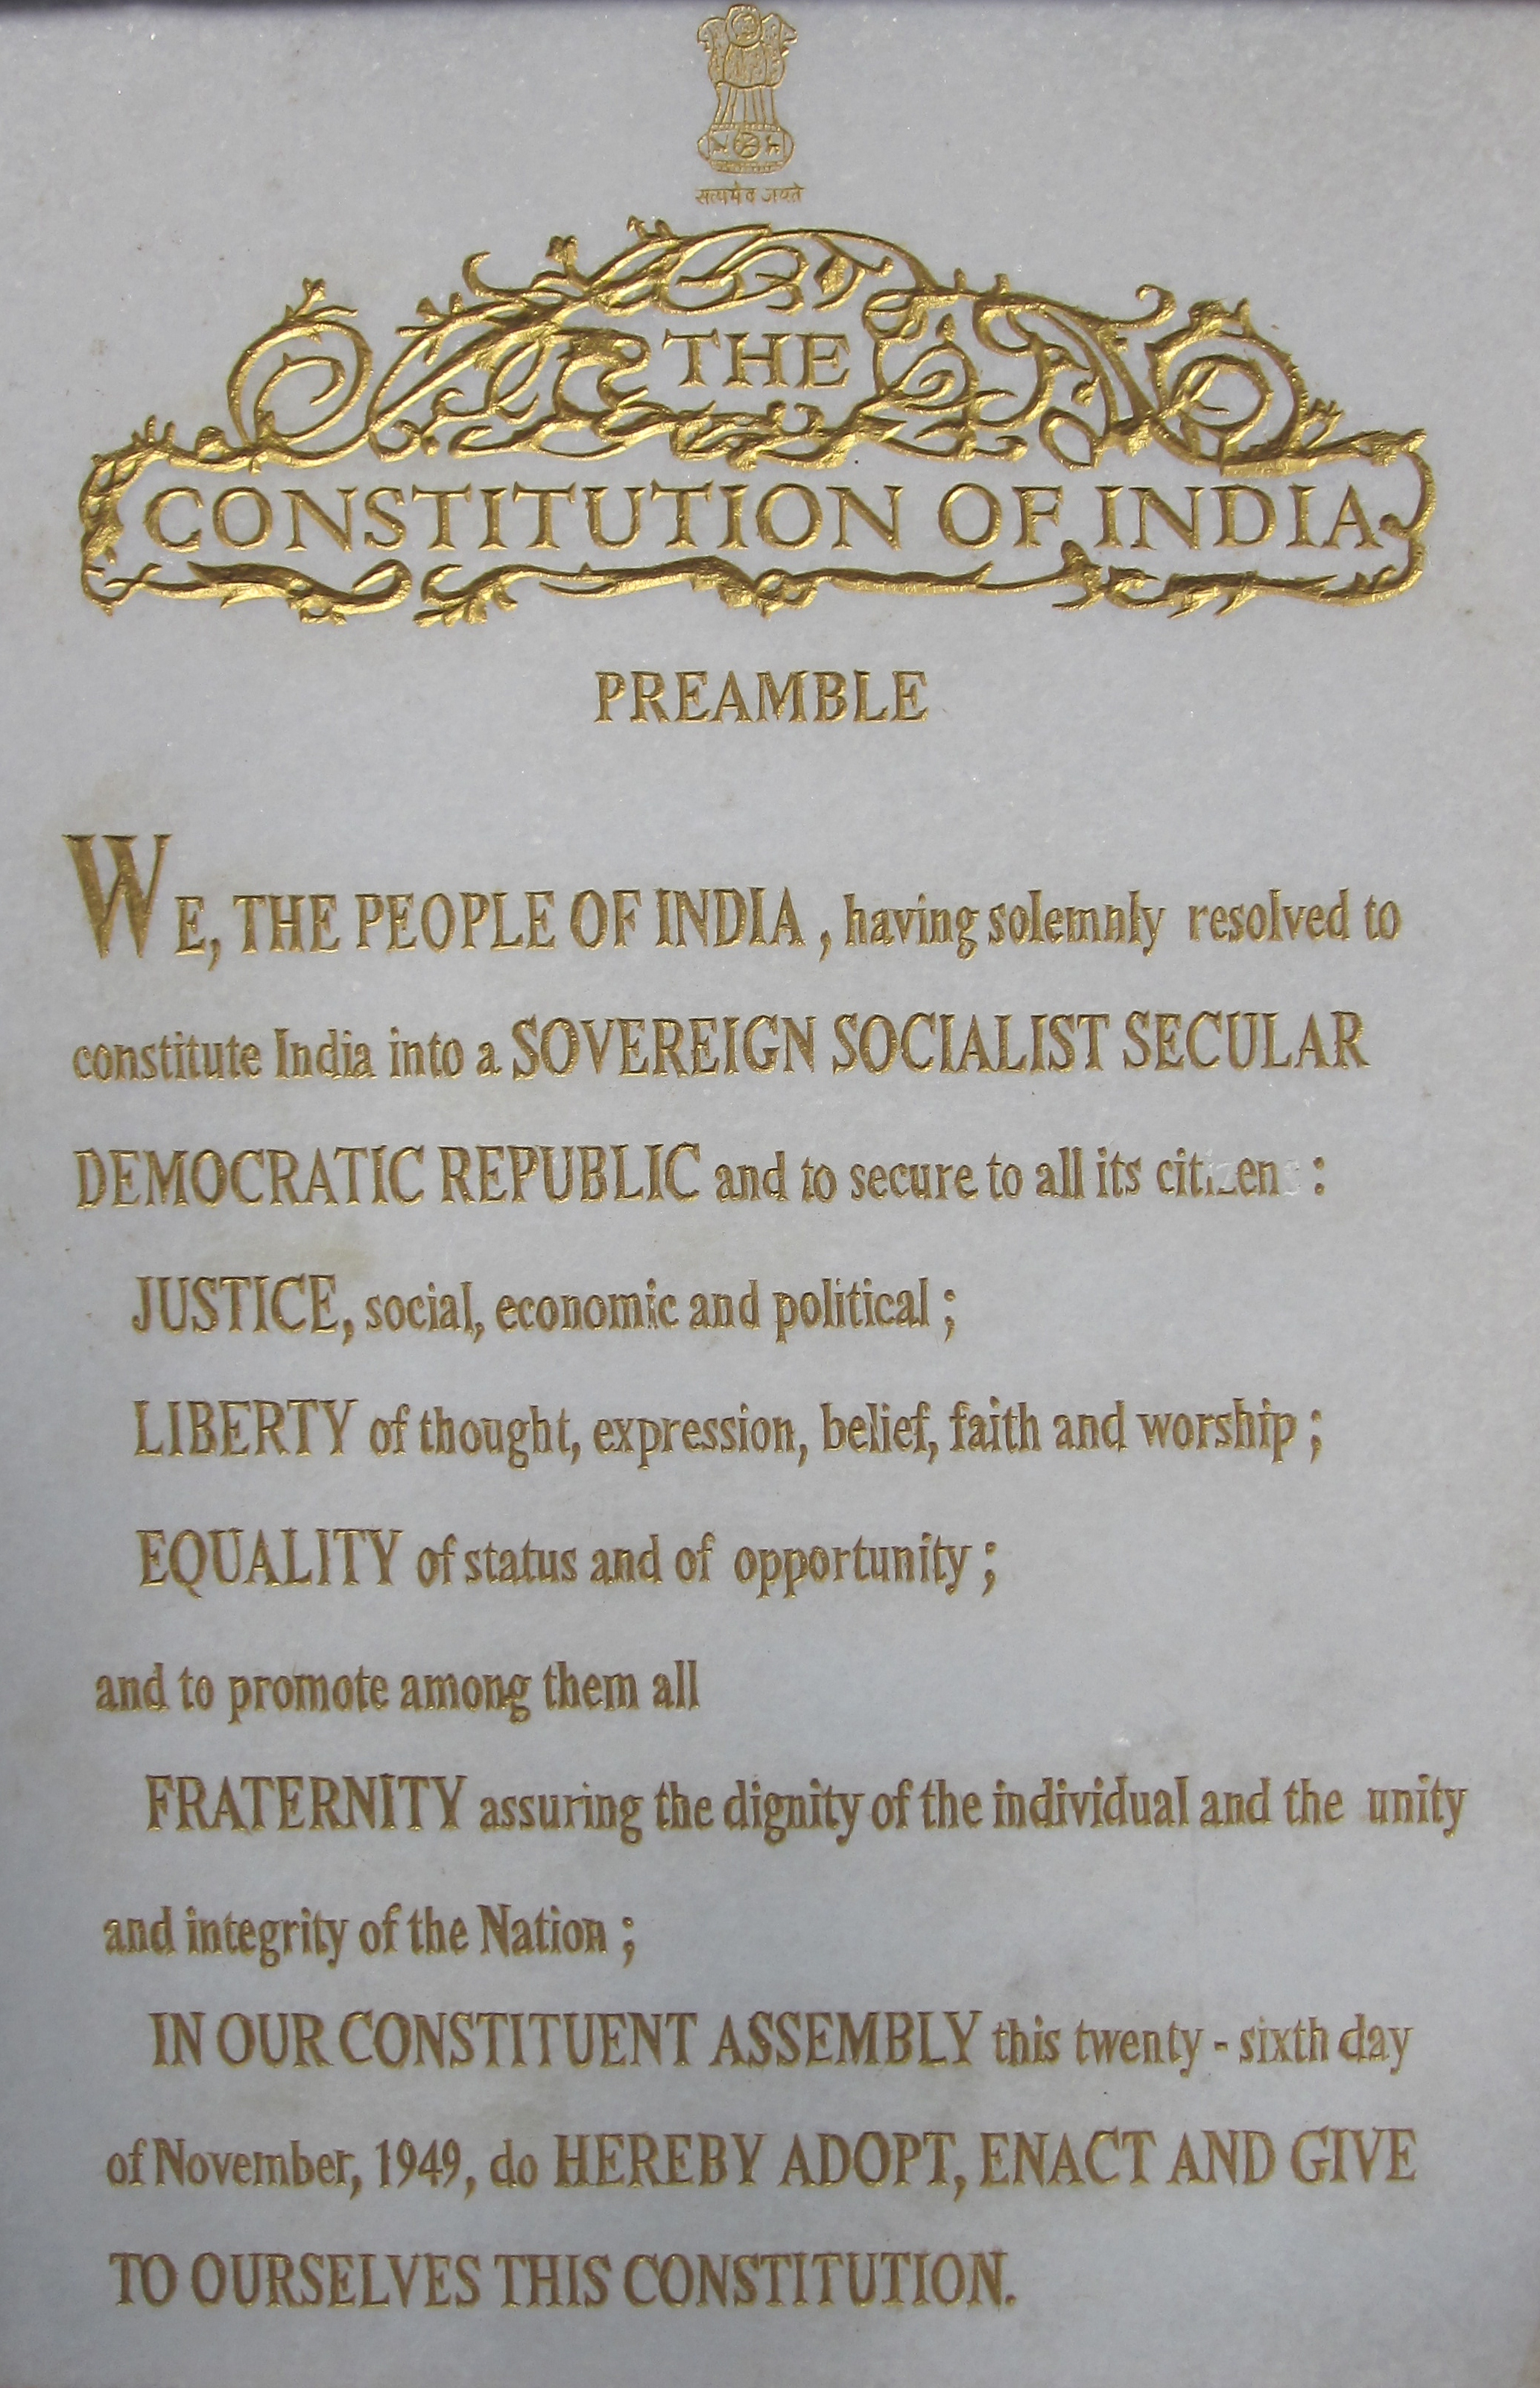 http://upload.wikimedia.org/wikipedia/commons/1/16/Constitution_of_india.jpg